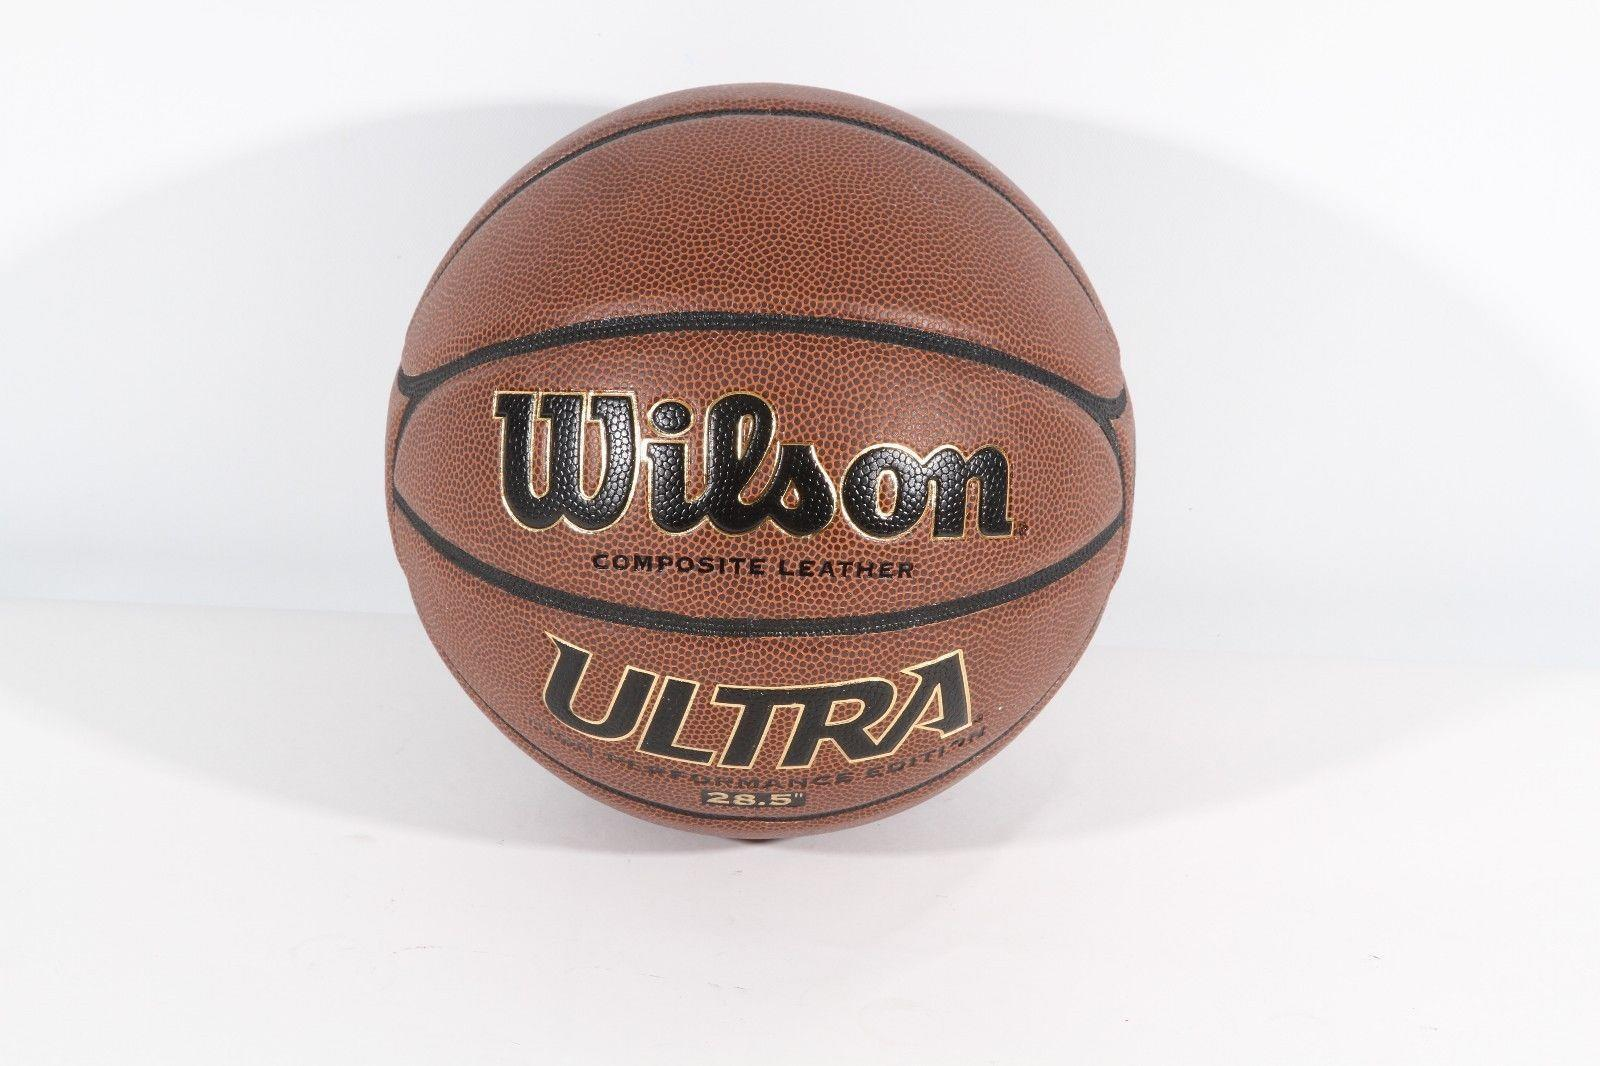 Wilson Ballon Ultre High Performance. - jacquesmoreausports